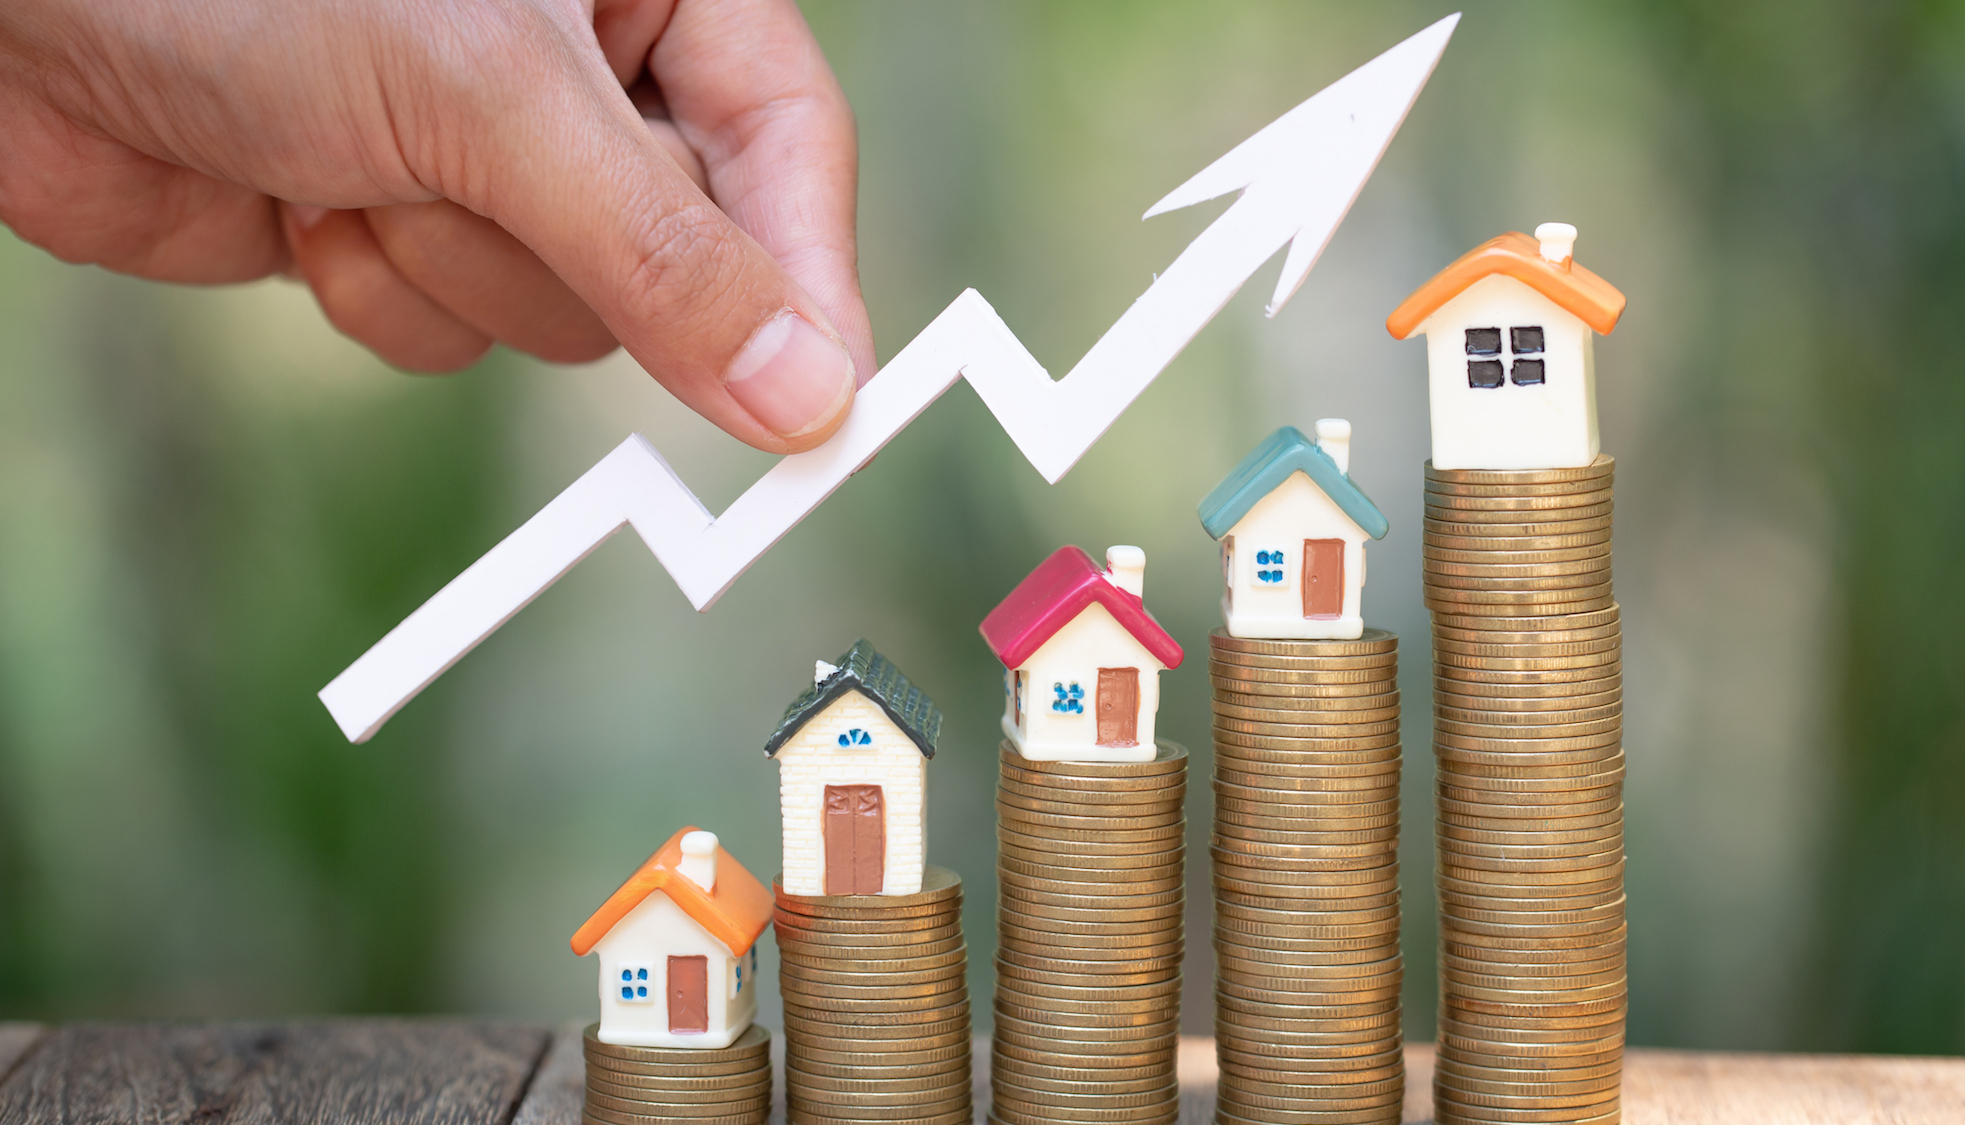 What Are the Experts Saying About Future Home Prices?